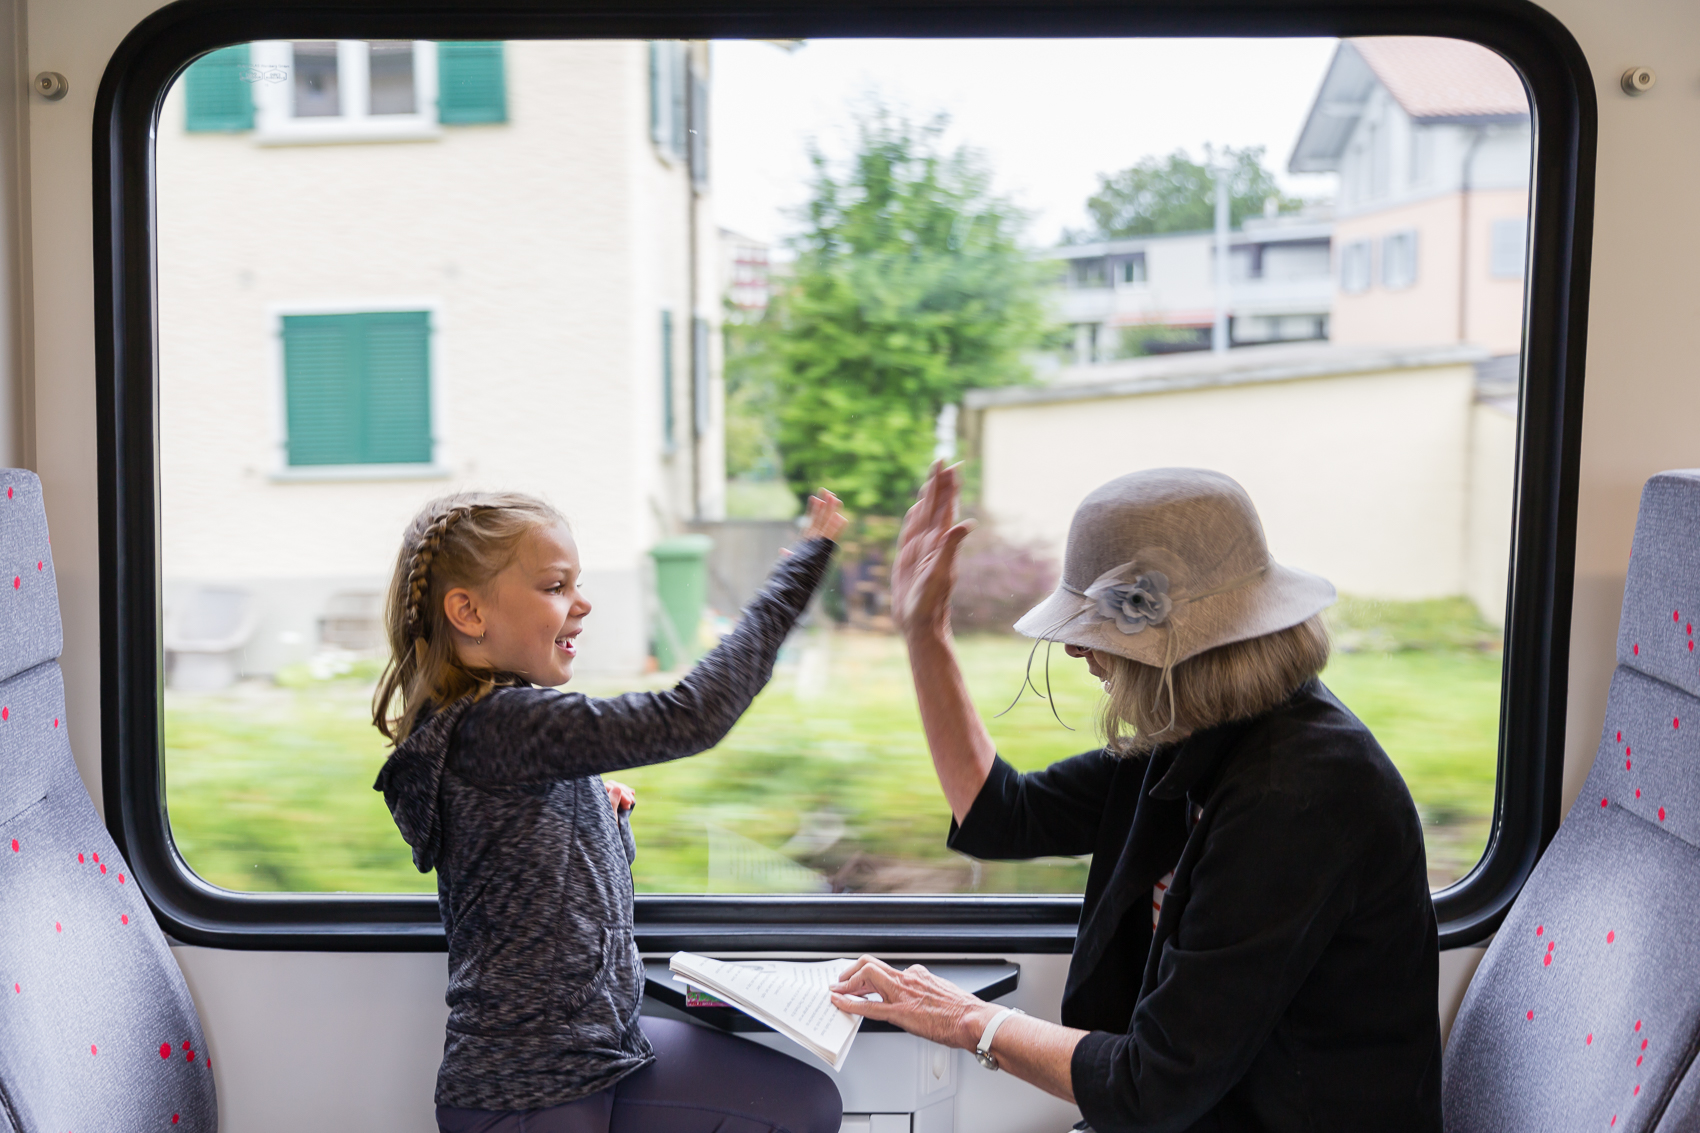 high five we have got this!